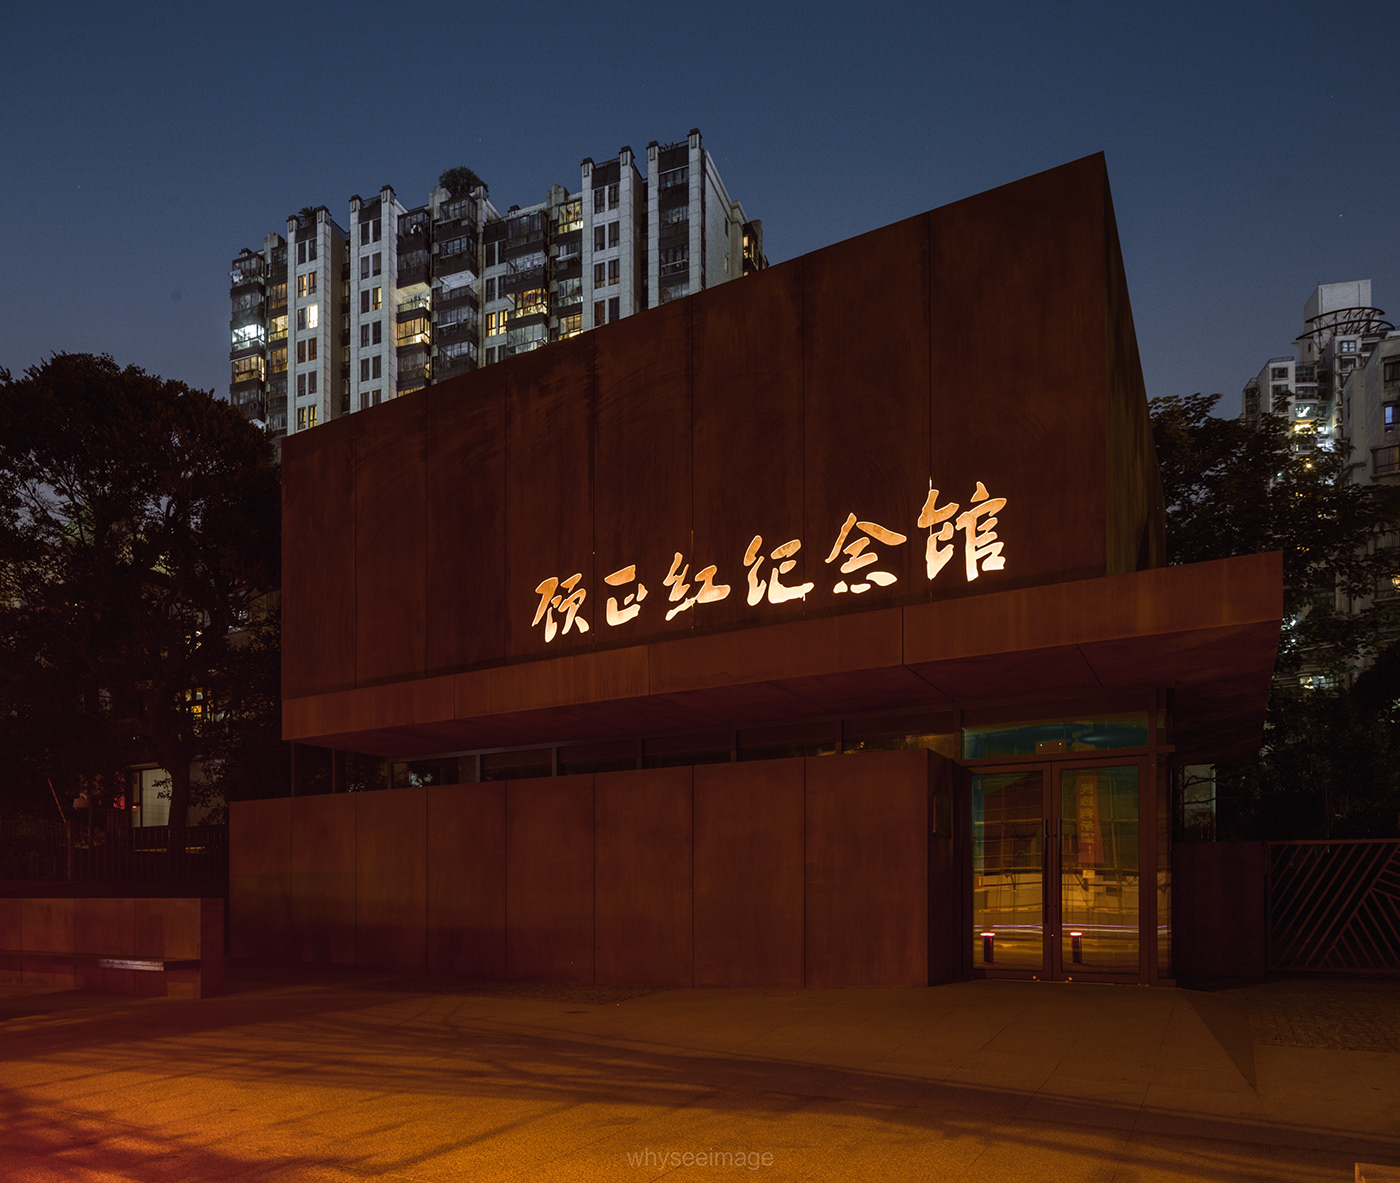 architecture ARCHITECTURE  PHOTOGRAPHY design Memorial Photography  shanghai